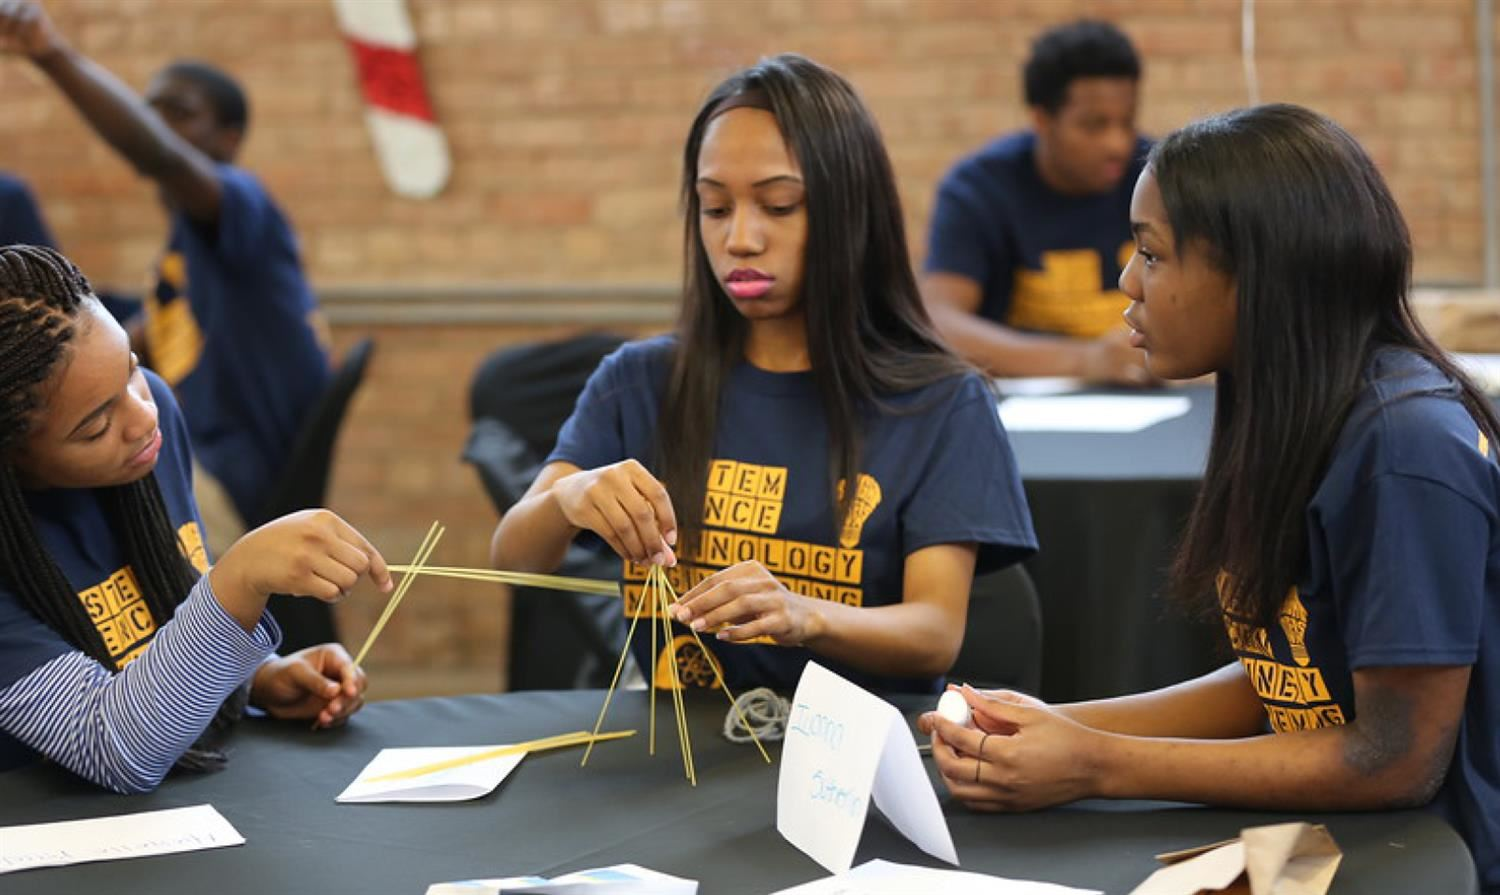 """State-of-the-art"" high school focusing on STEM education coming to Englewood."